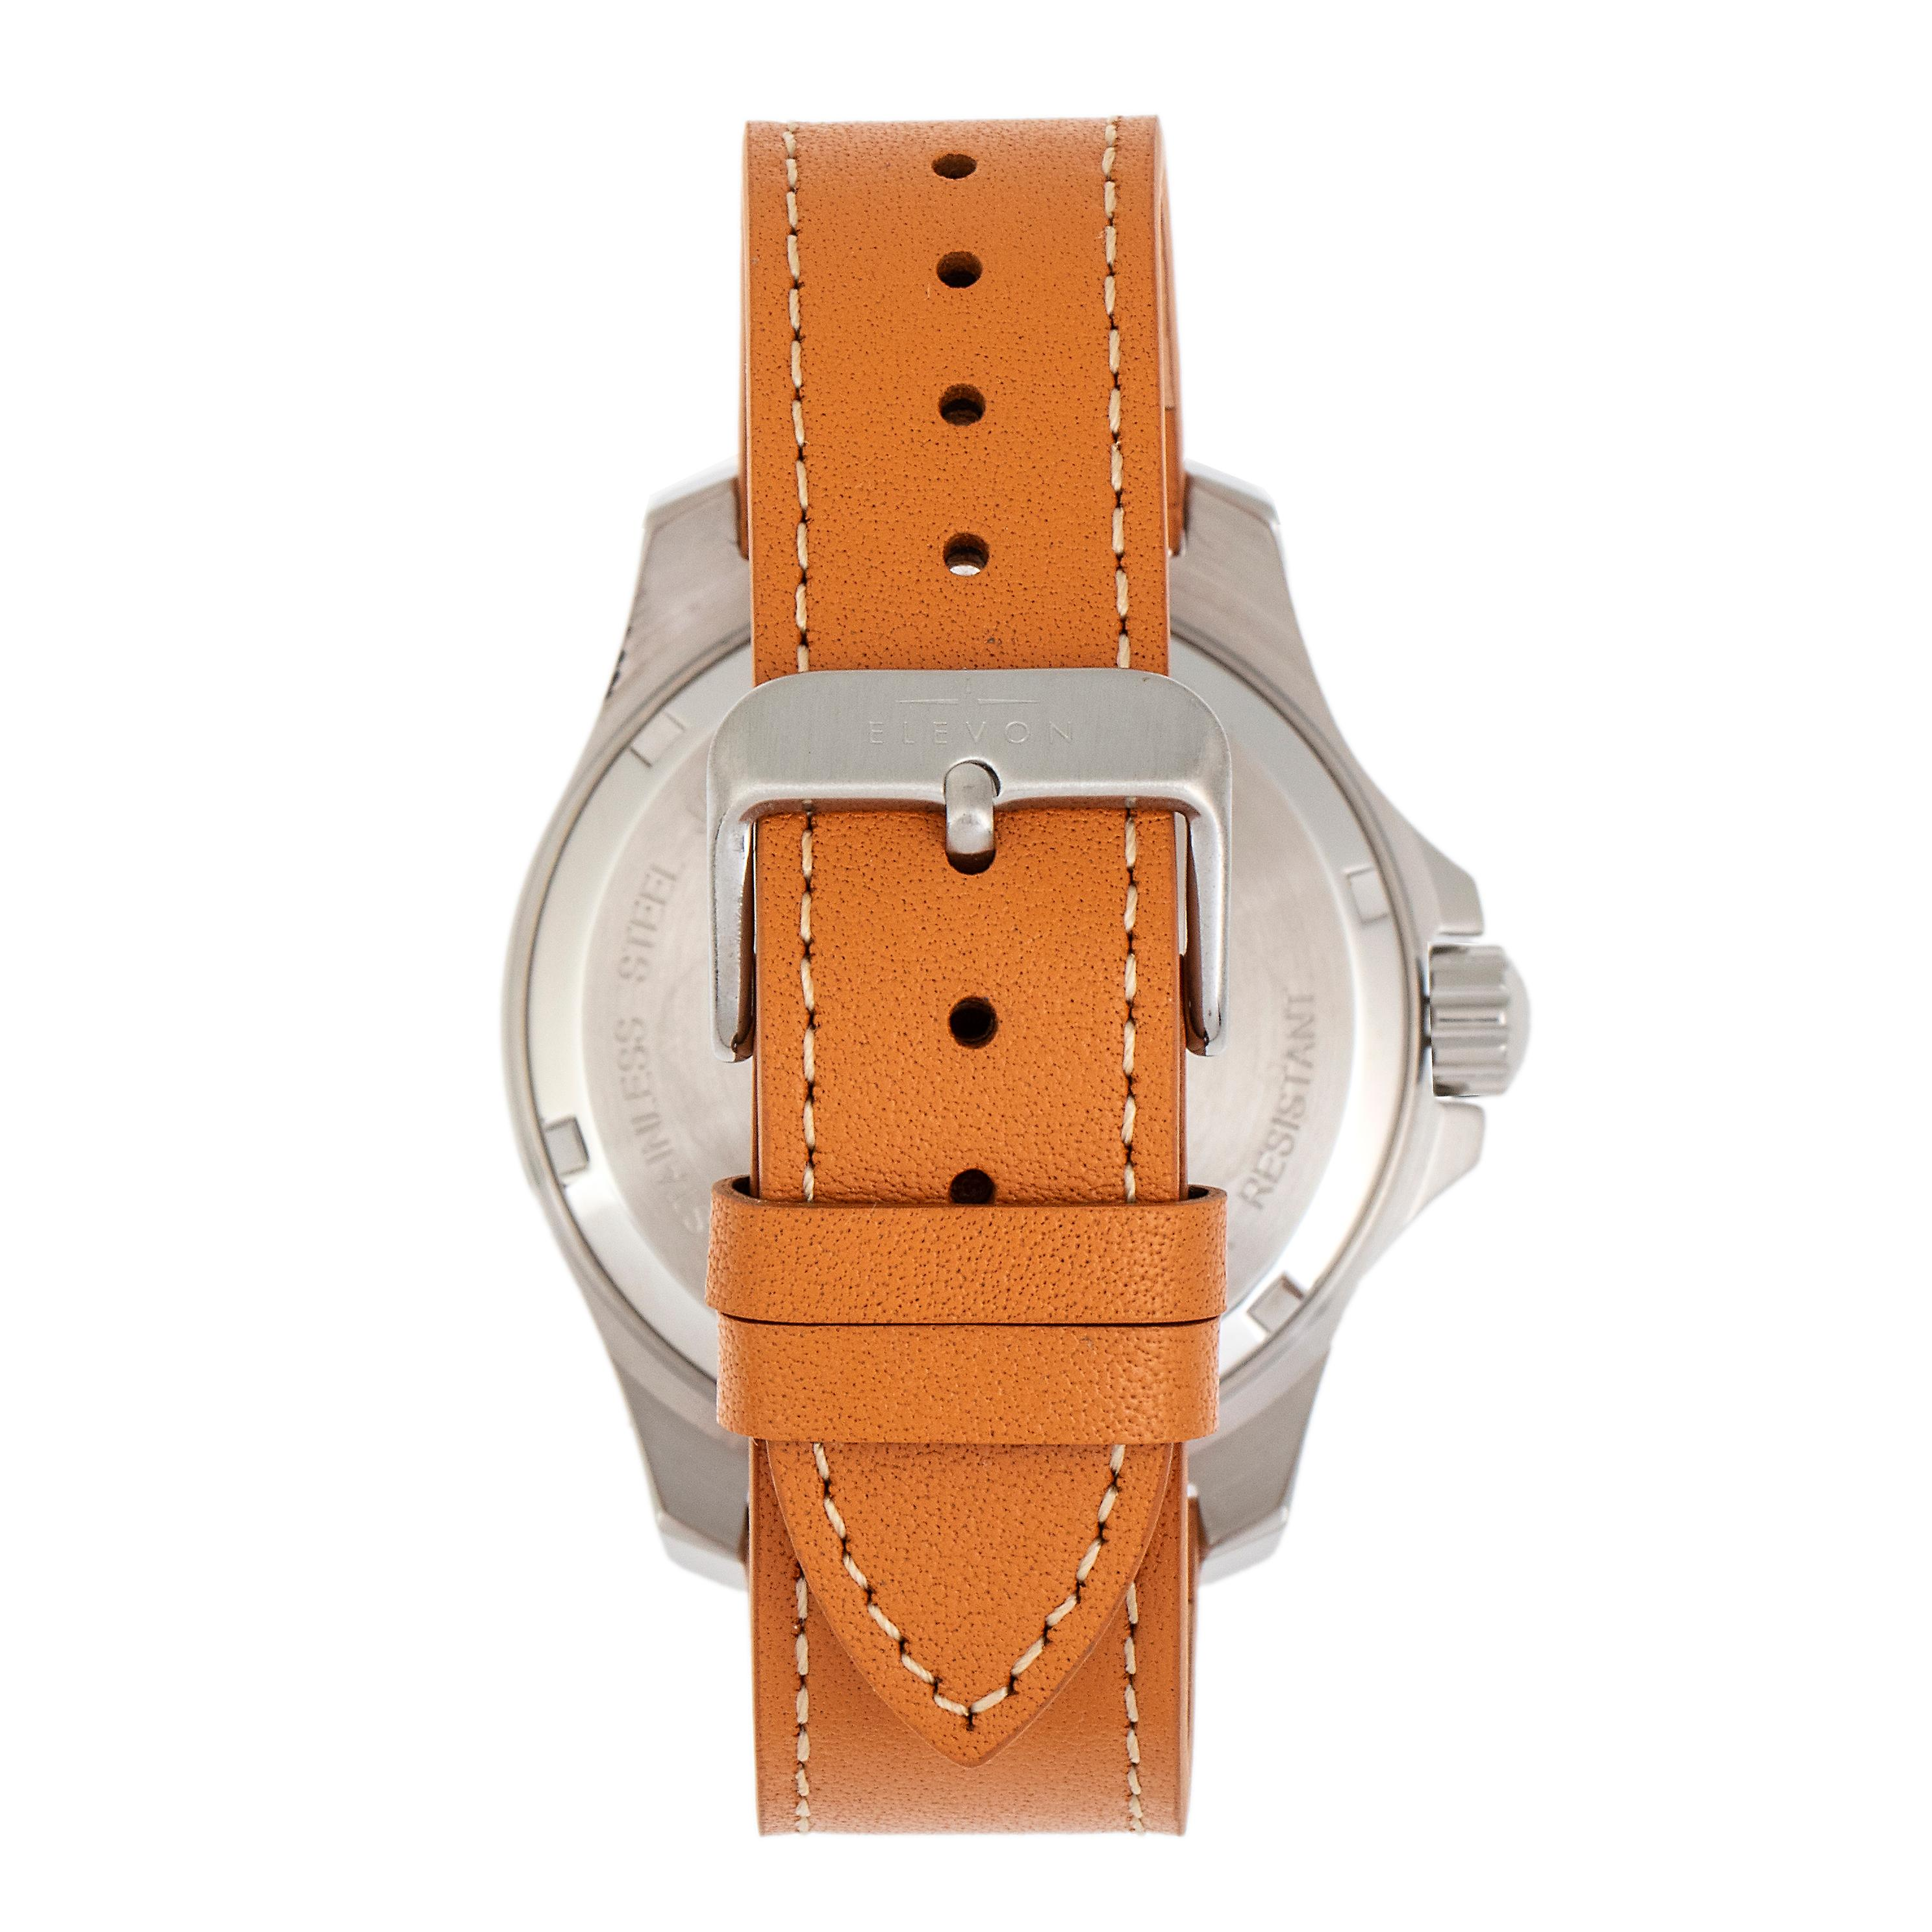 Elevon Aviator Leather-Band Watch w/Date - Camel/Brown